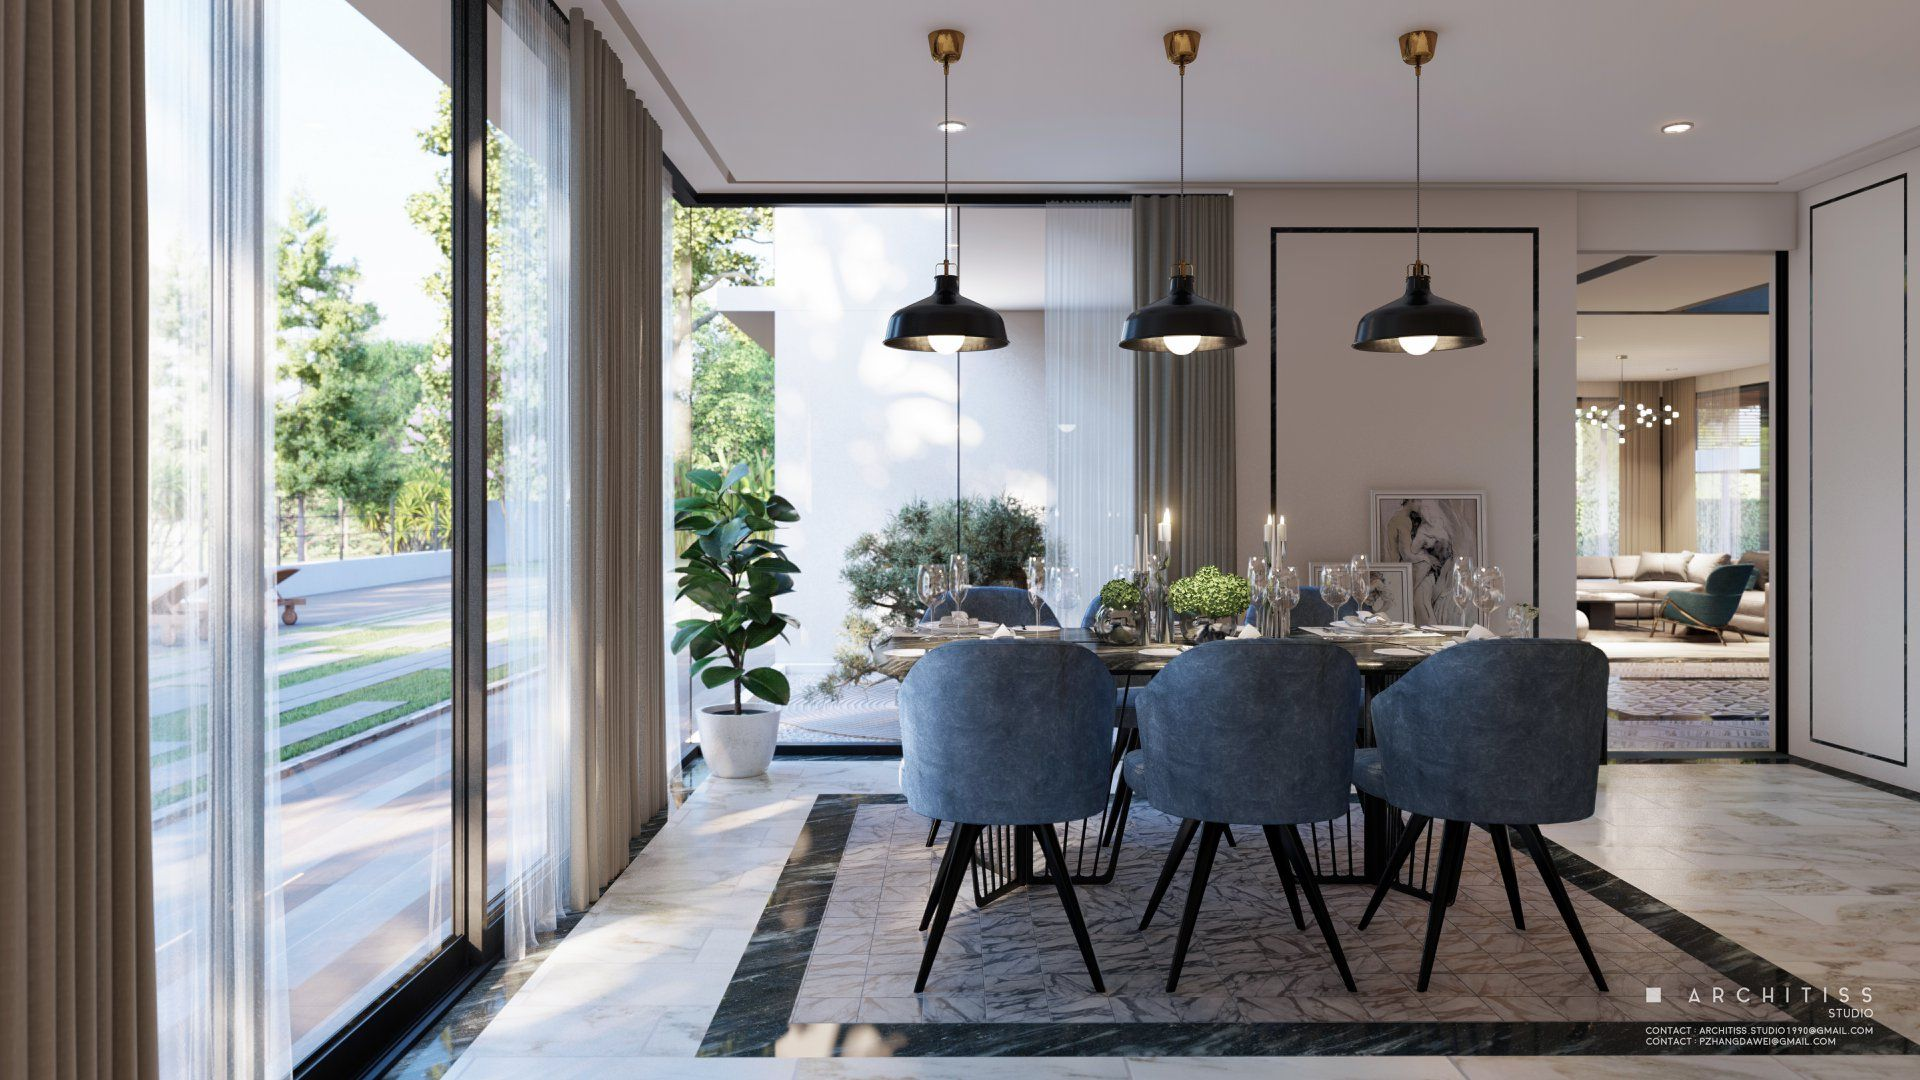 Dining Zone Rendered In Lumion9 By Architiss Baan Khun Lek